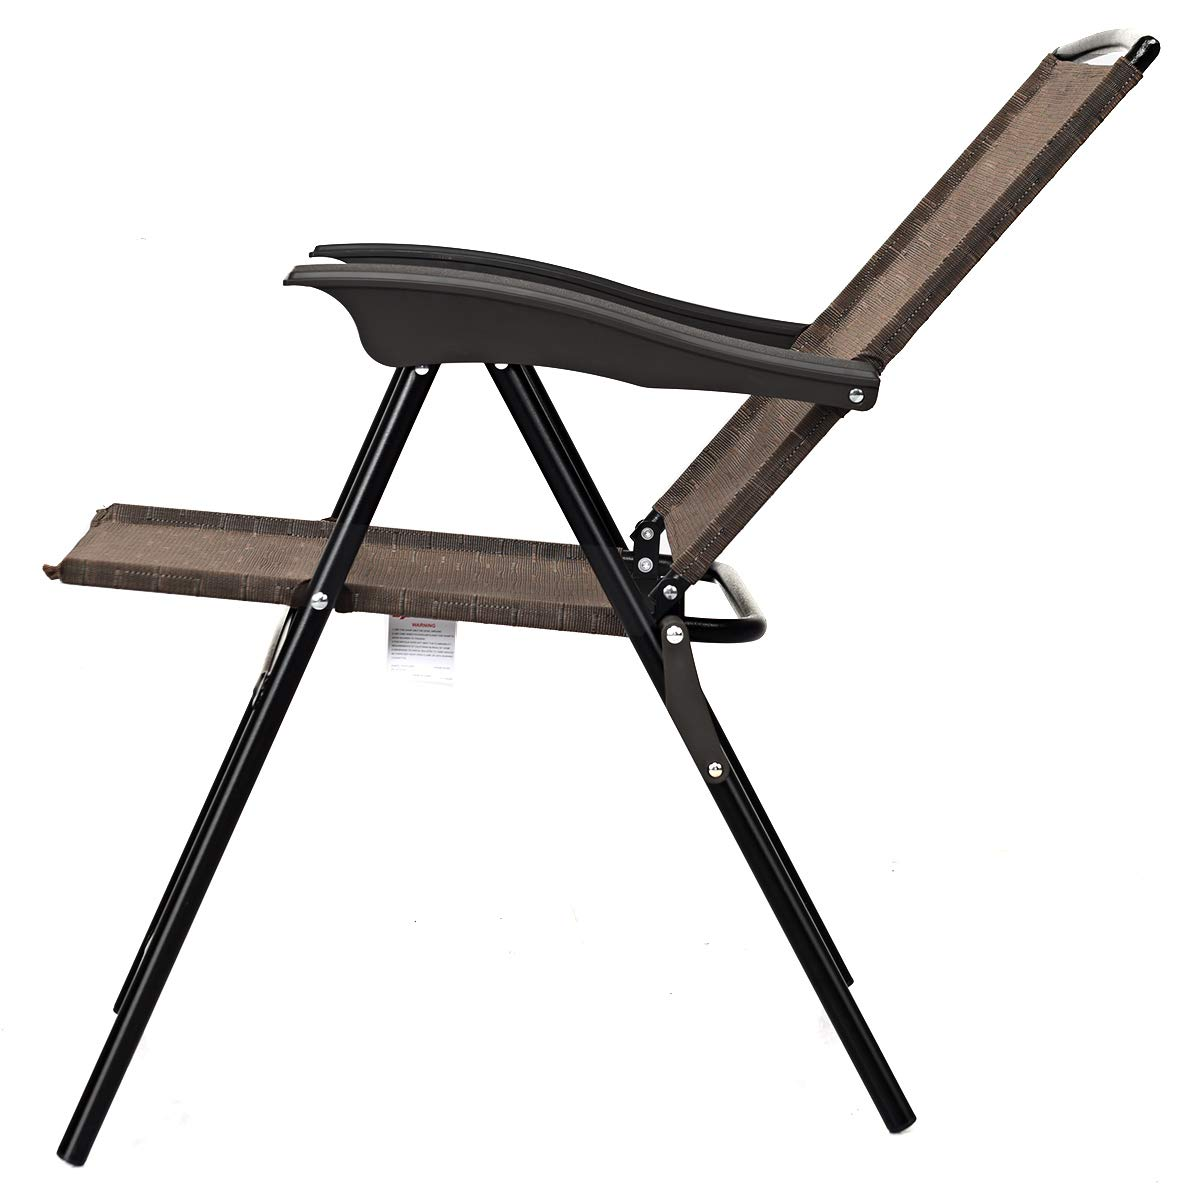 Goplus Sets of 4 Folding Sling Chairs Portable Chairs for Patio Garden Pool Outdoor & Indoor w/Armrests by Goplus (Image #7)